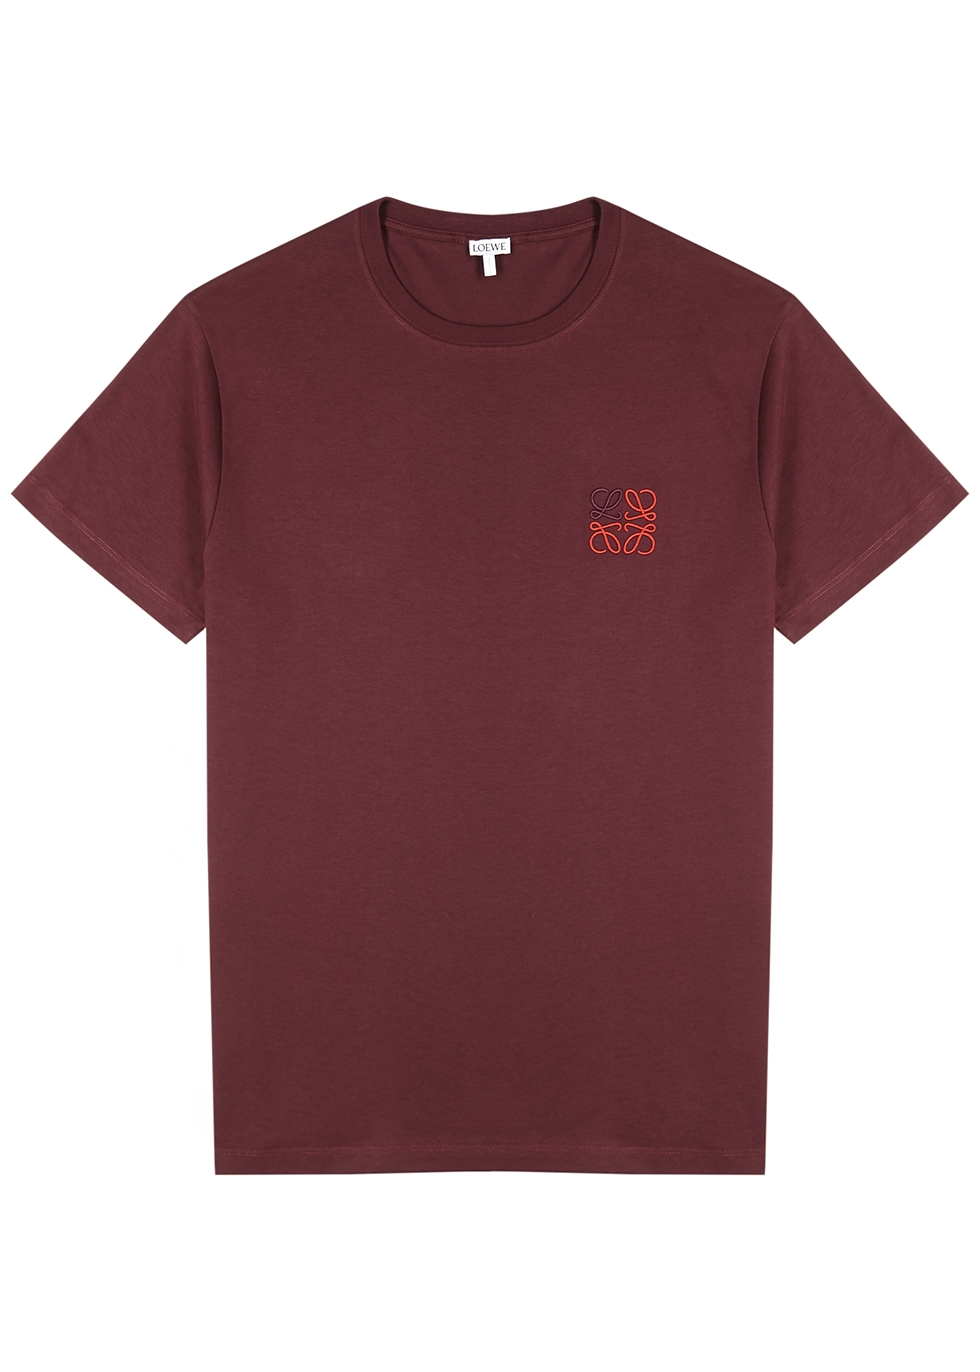 Burgundy logo-embroidered cotton T-shirt